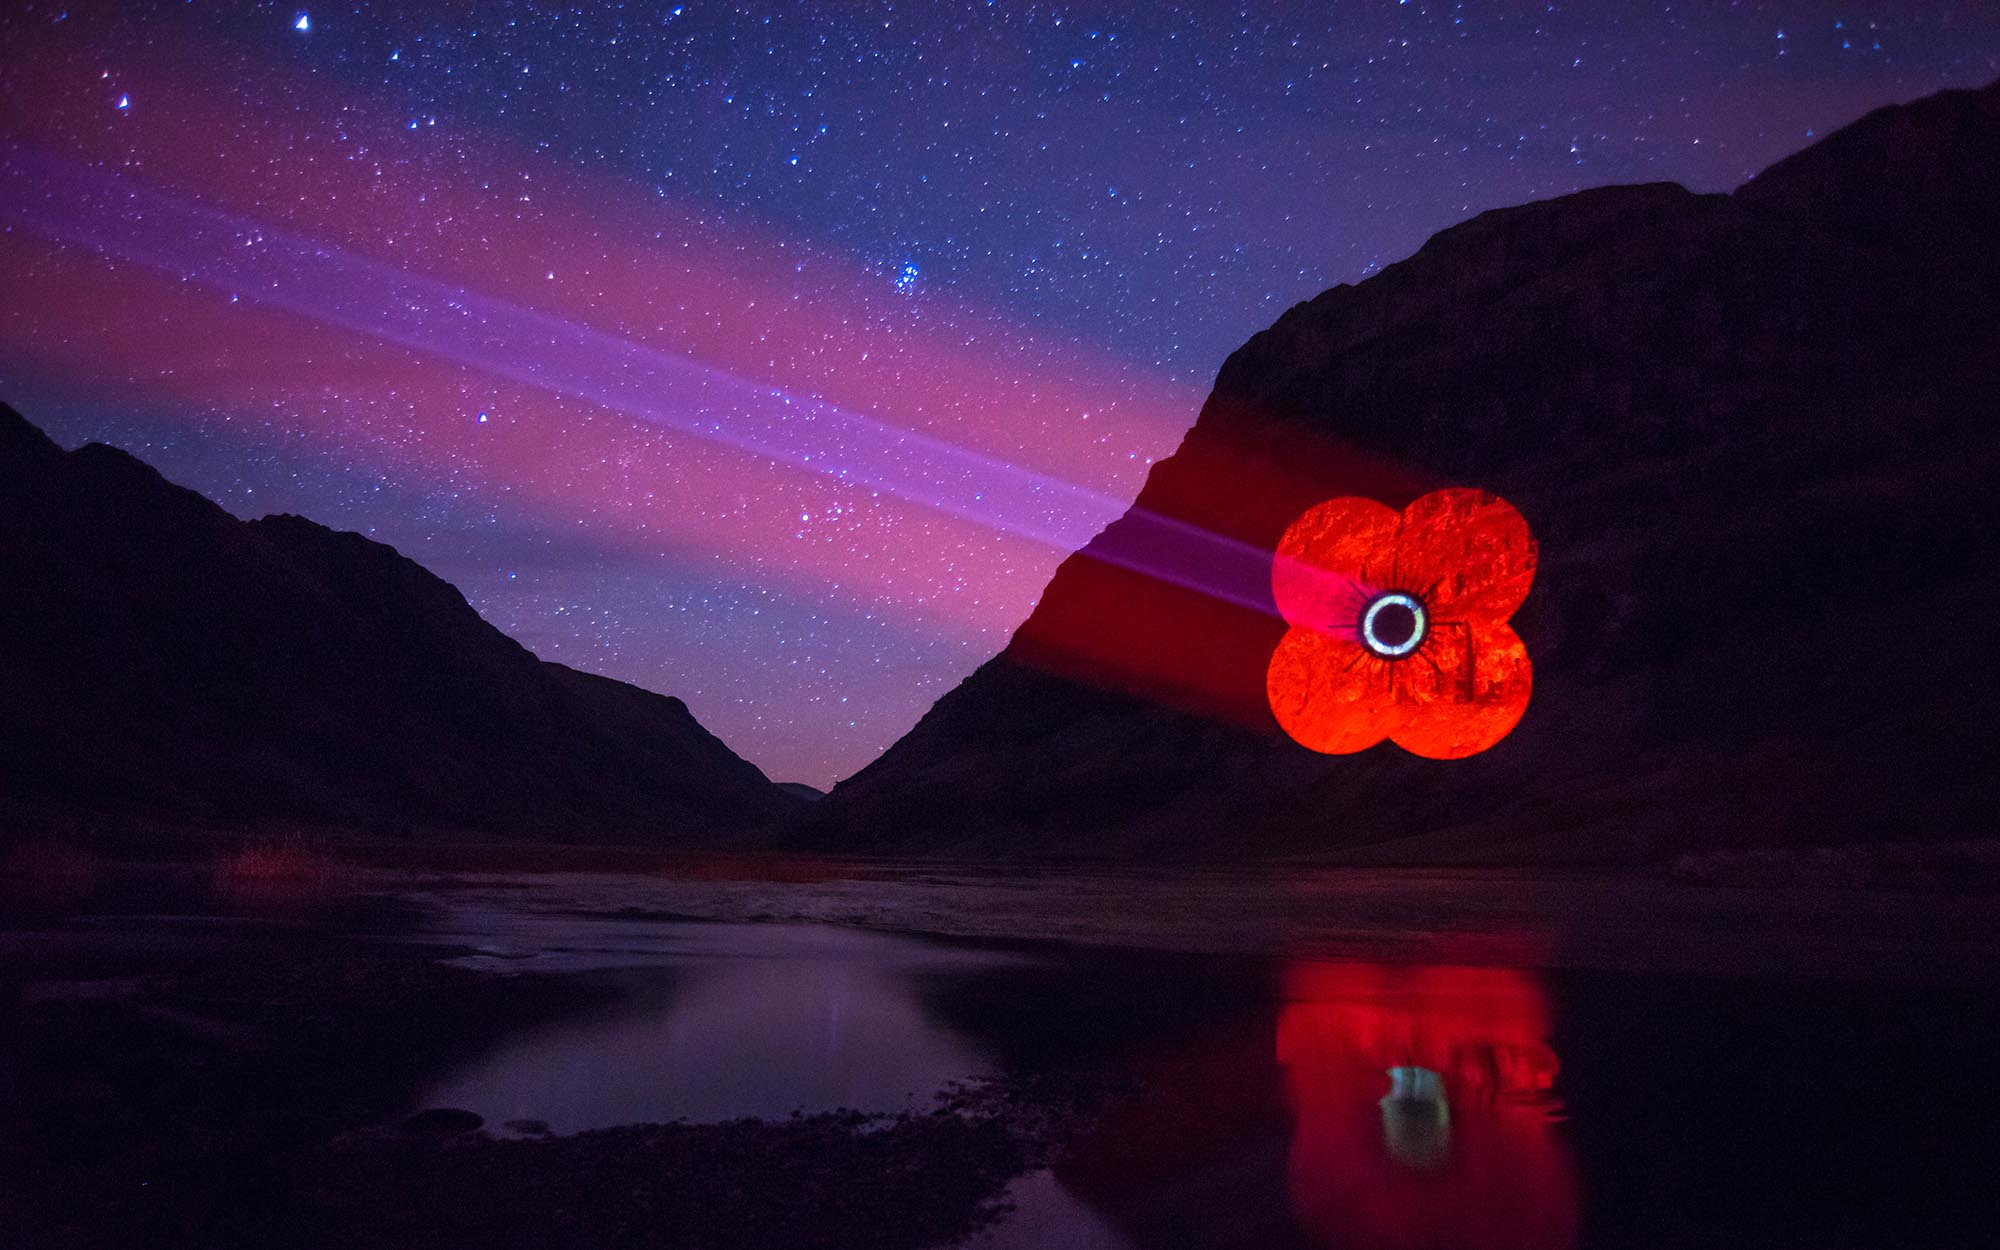 Poppy Scotland logo projected onto Mountain in Glencoe